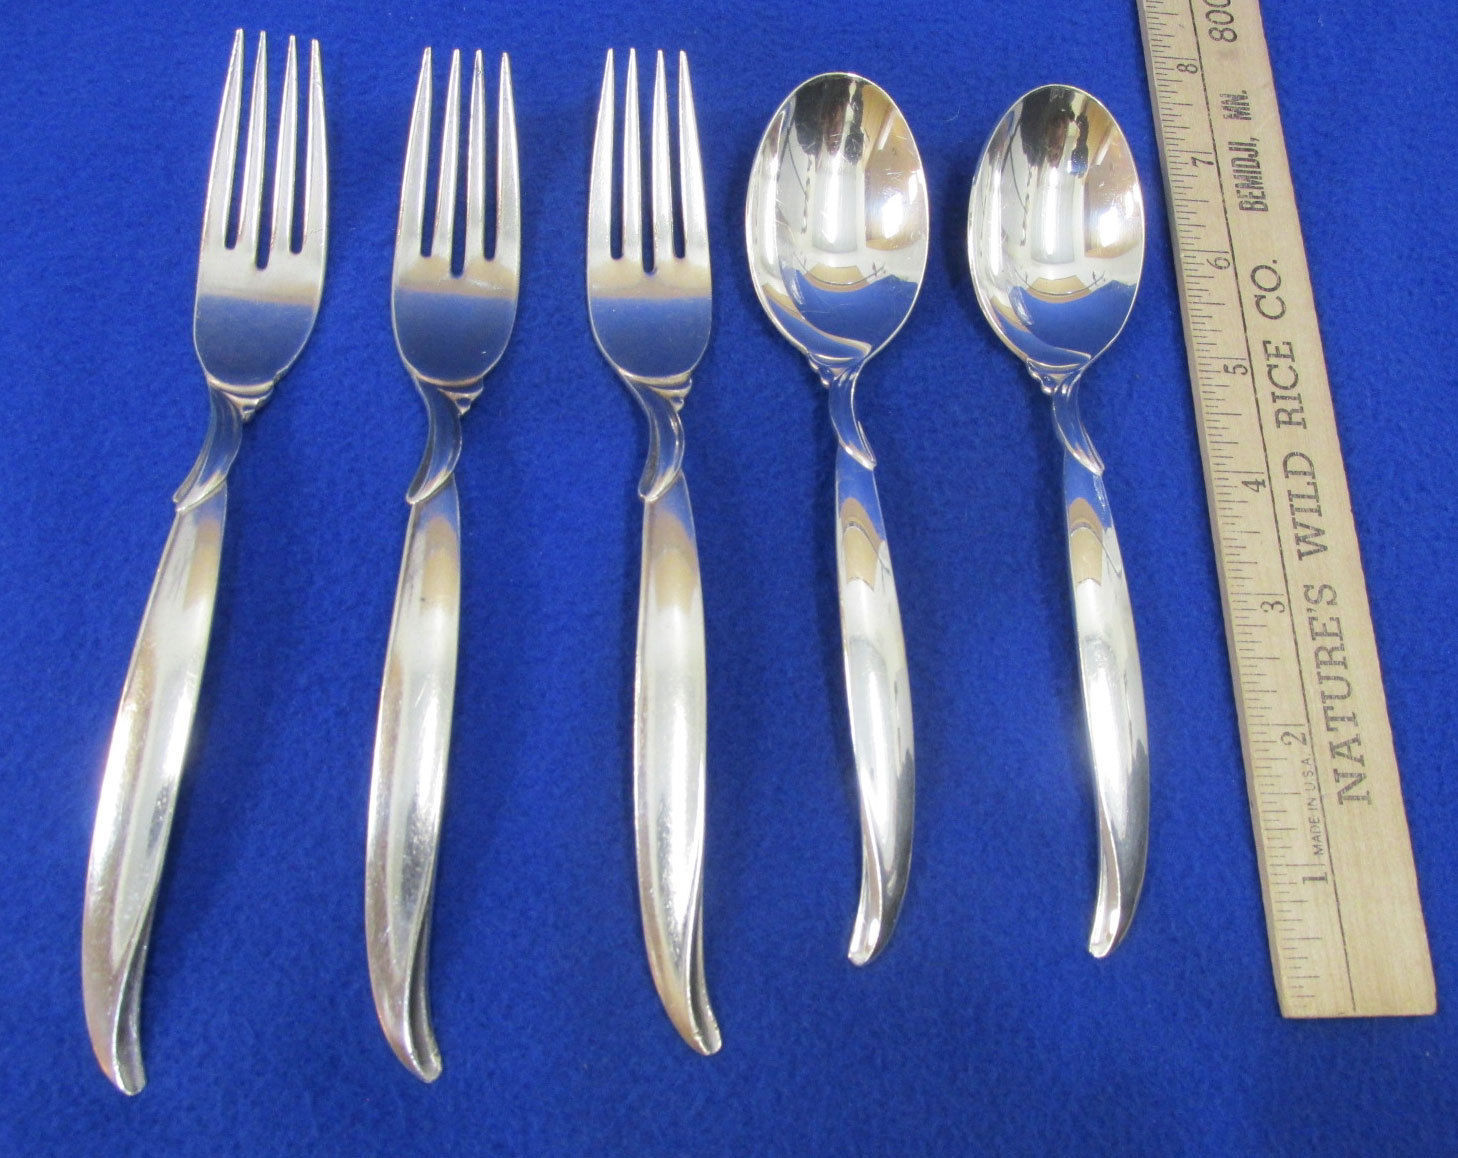 5 Vintage 1847 Rogers Silver Plate Flair Pattern Flatware 3 Forks 2 Tablespoons - $19.79